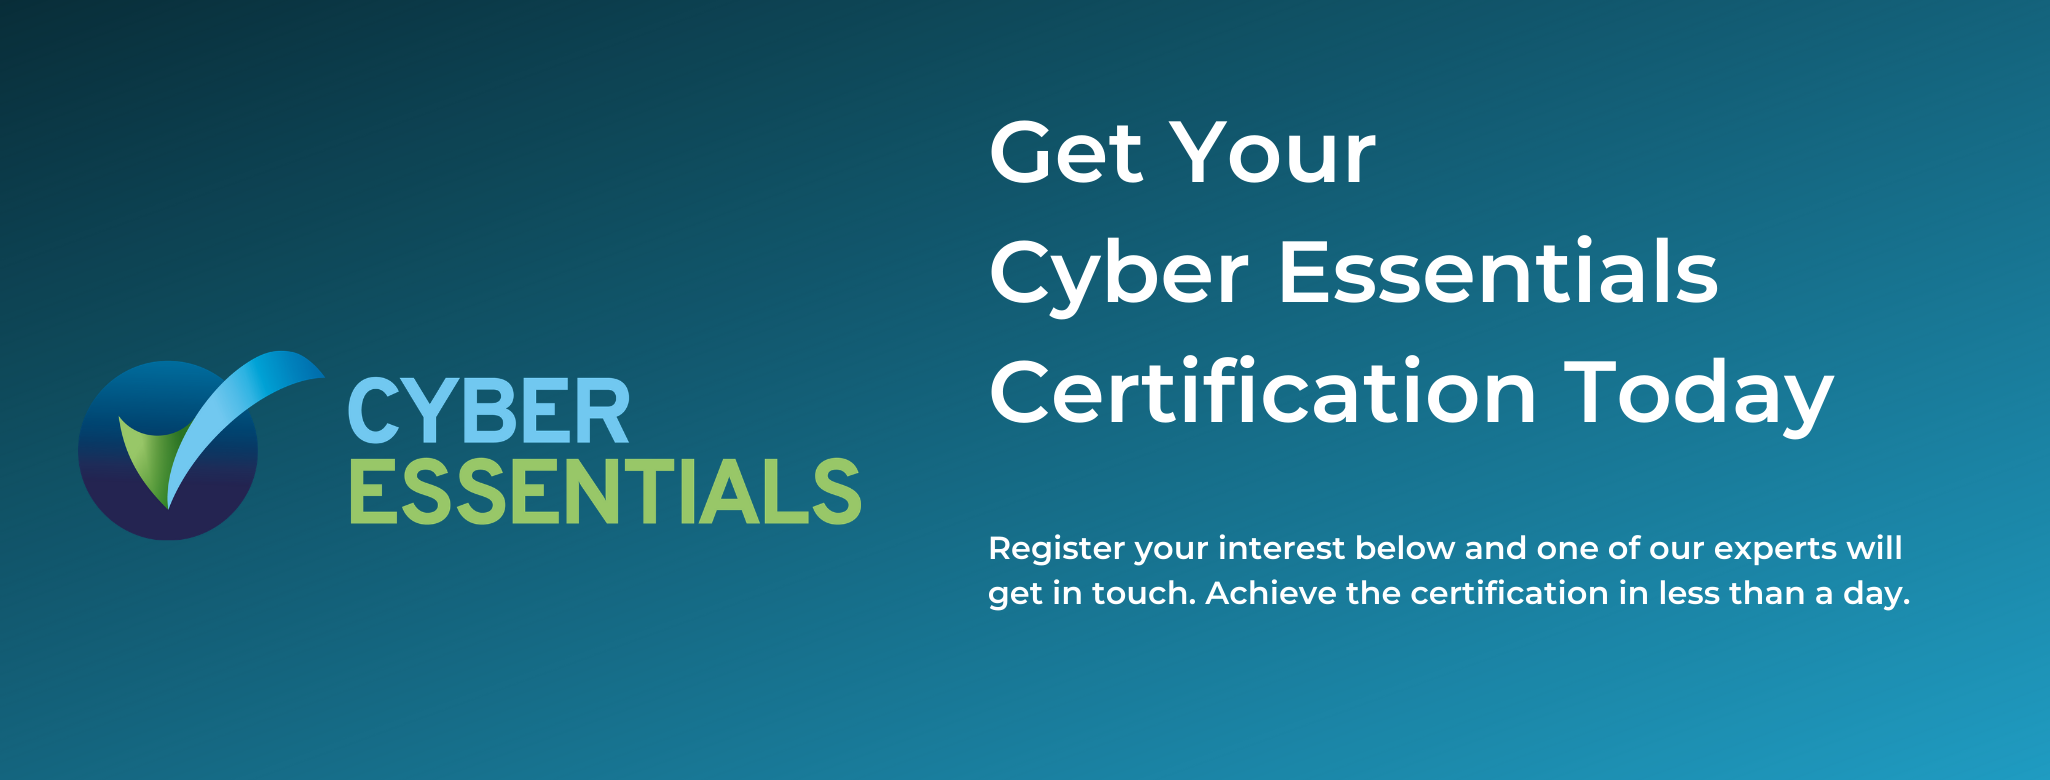 Get Your Cyber Essentials Certification Today